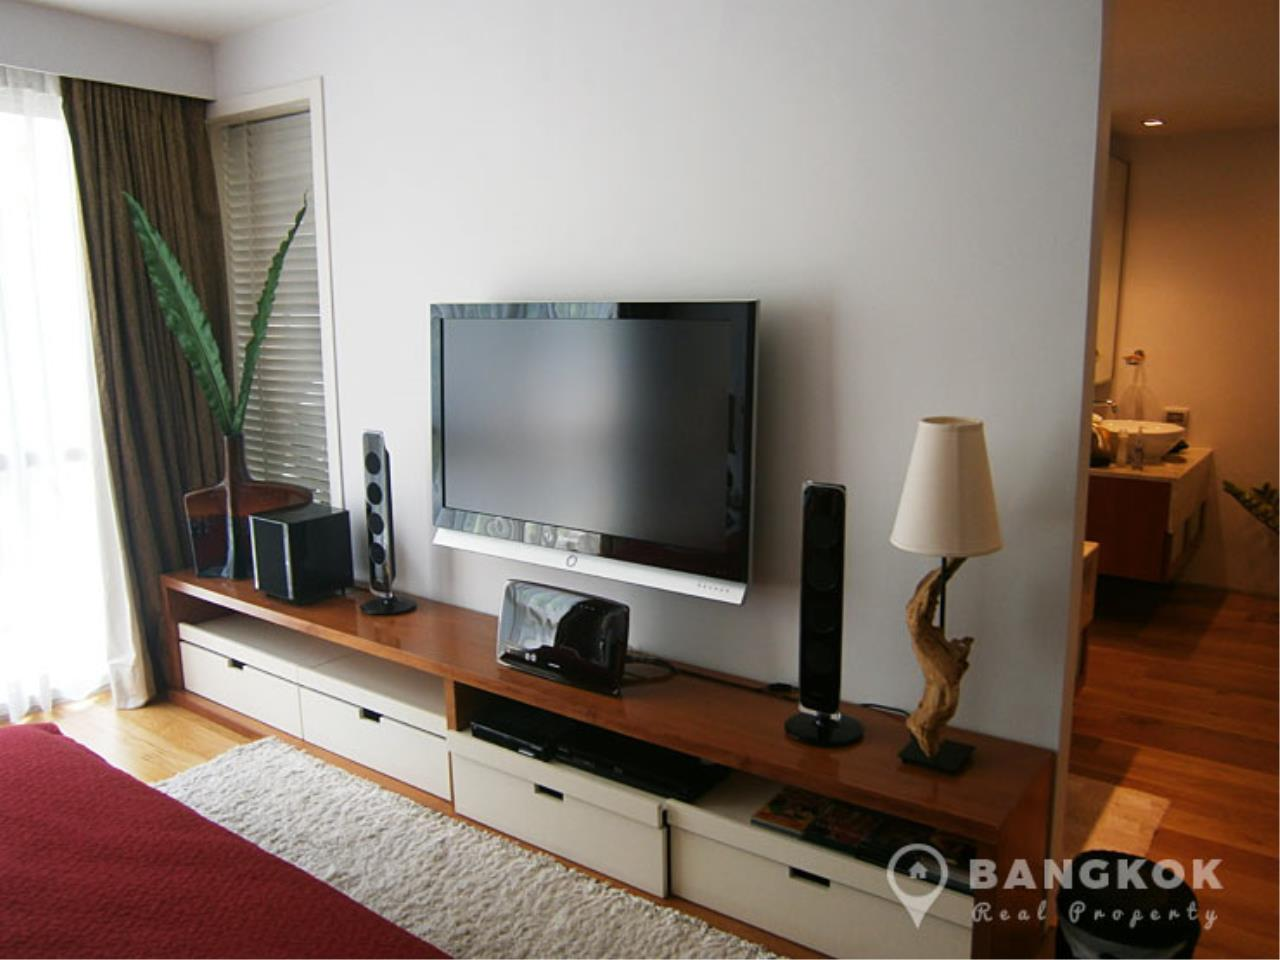 Bangkok Real Property Agency's Ficus Lane | A Fabulous Spacious 3 Bed 4 Bath Duplex near BTS 22